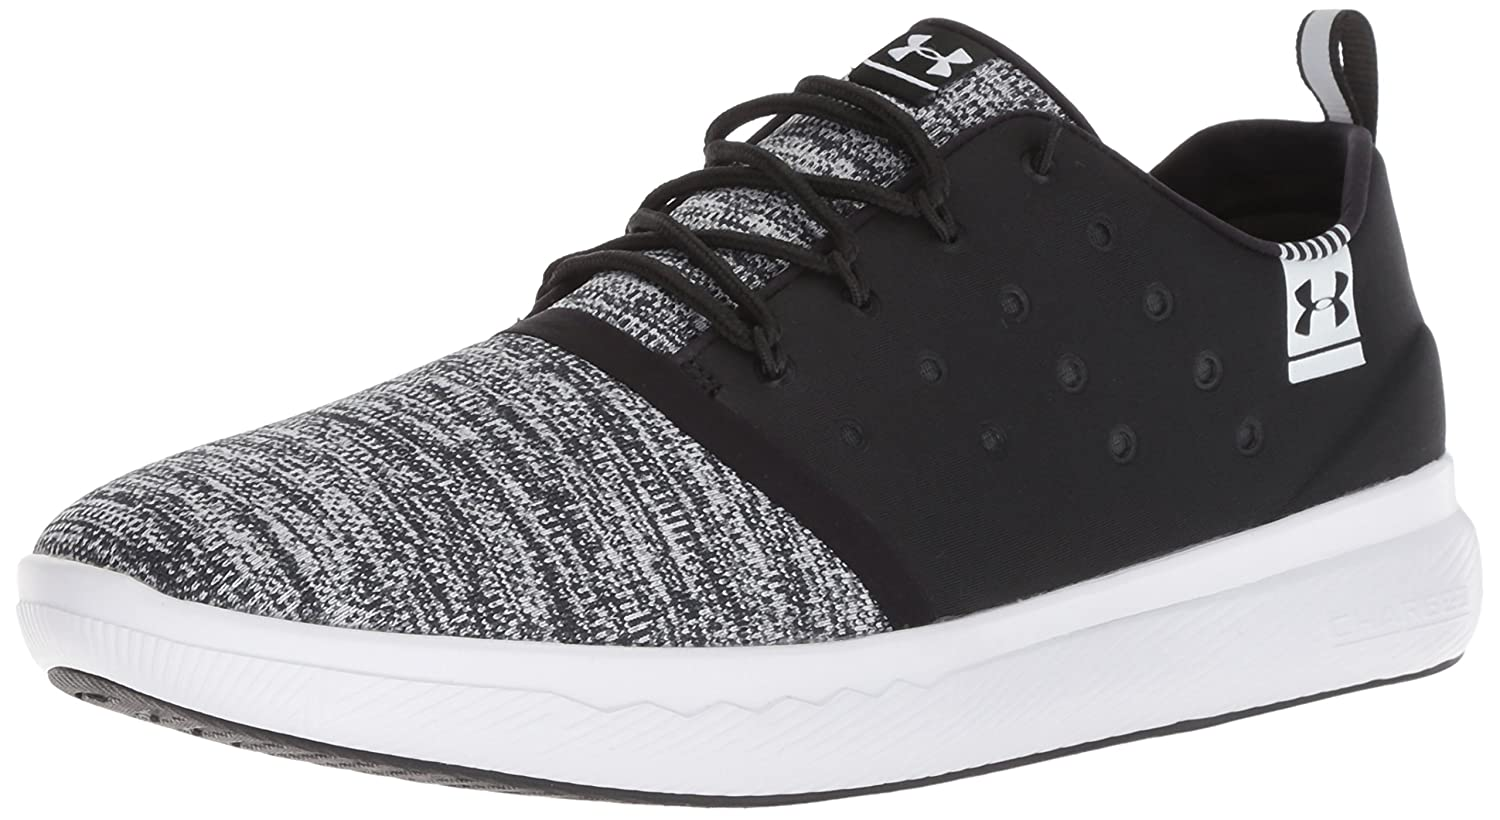 Under Armour Men's Charged 24/7 Sneaker B076VPTV8D 7 M US|Black (001)/White